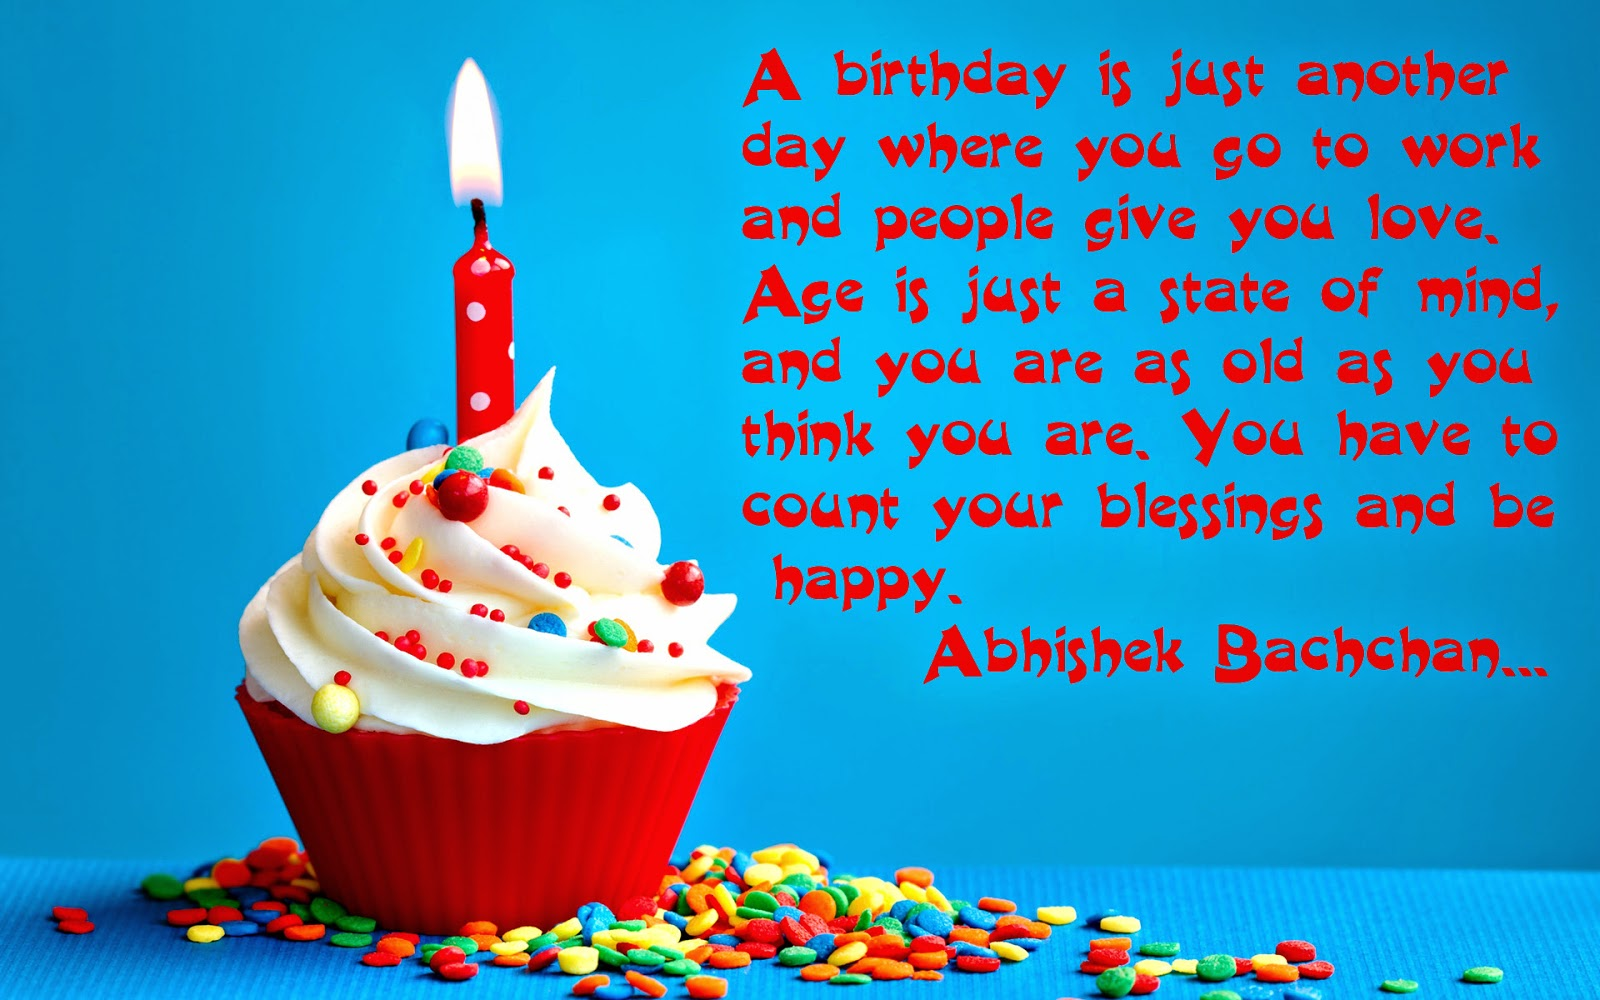 happy birthday wishes message in english ; Birthday-quotes-A-birthday-is-just-another-day-where-you-go